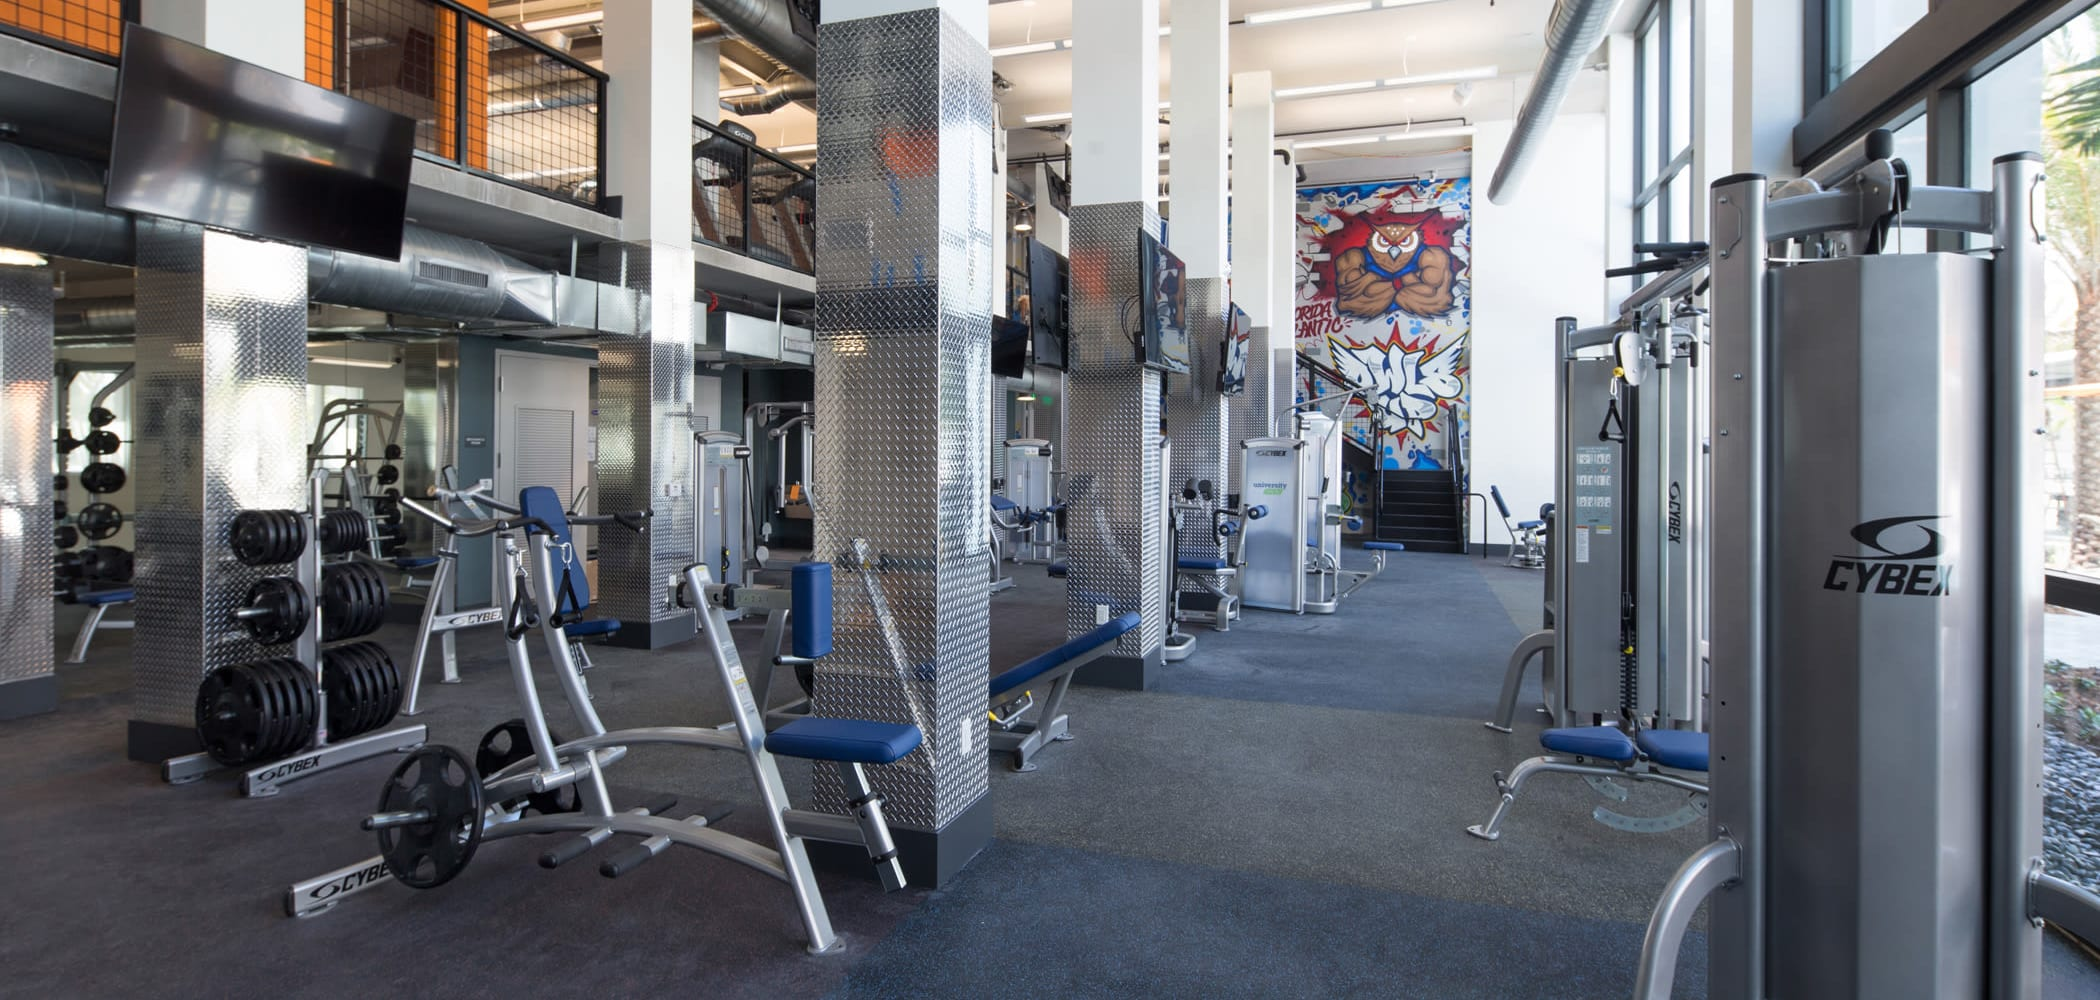 Giant fitness center where students can workout after class at University Park in Boca Raton, Florida